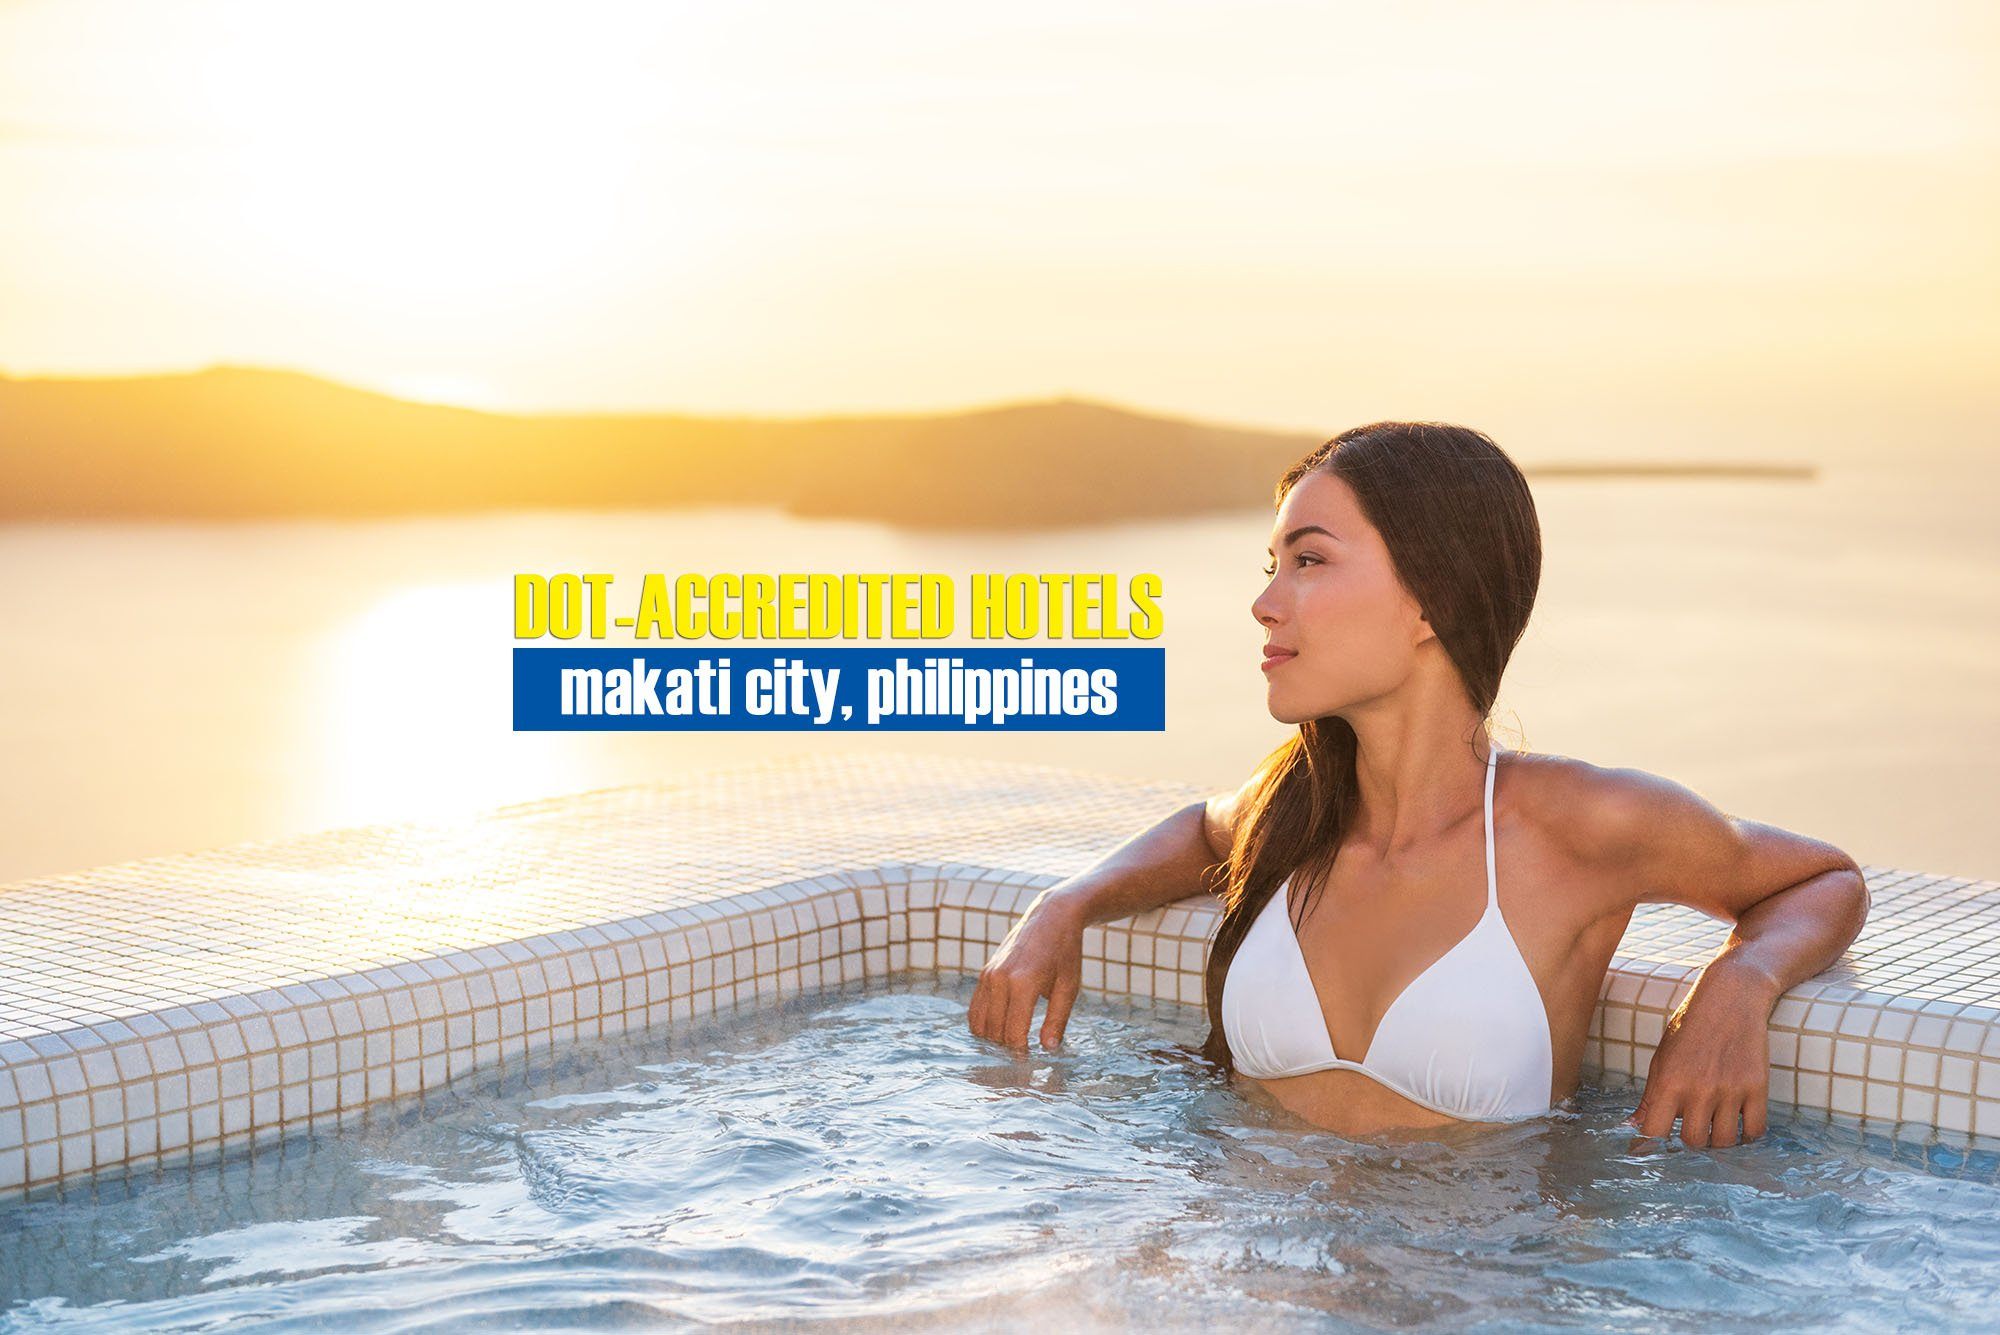 Hotels, Inns, Pension Houses & Hostels in Makati City